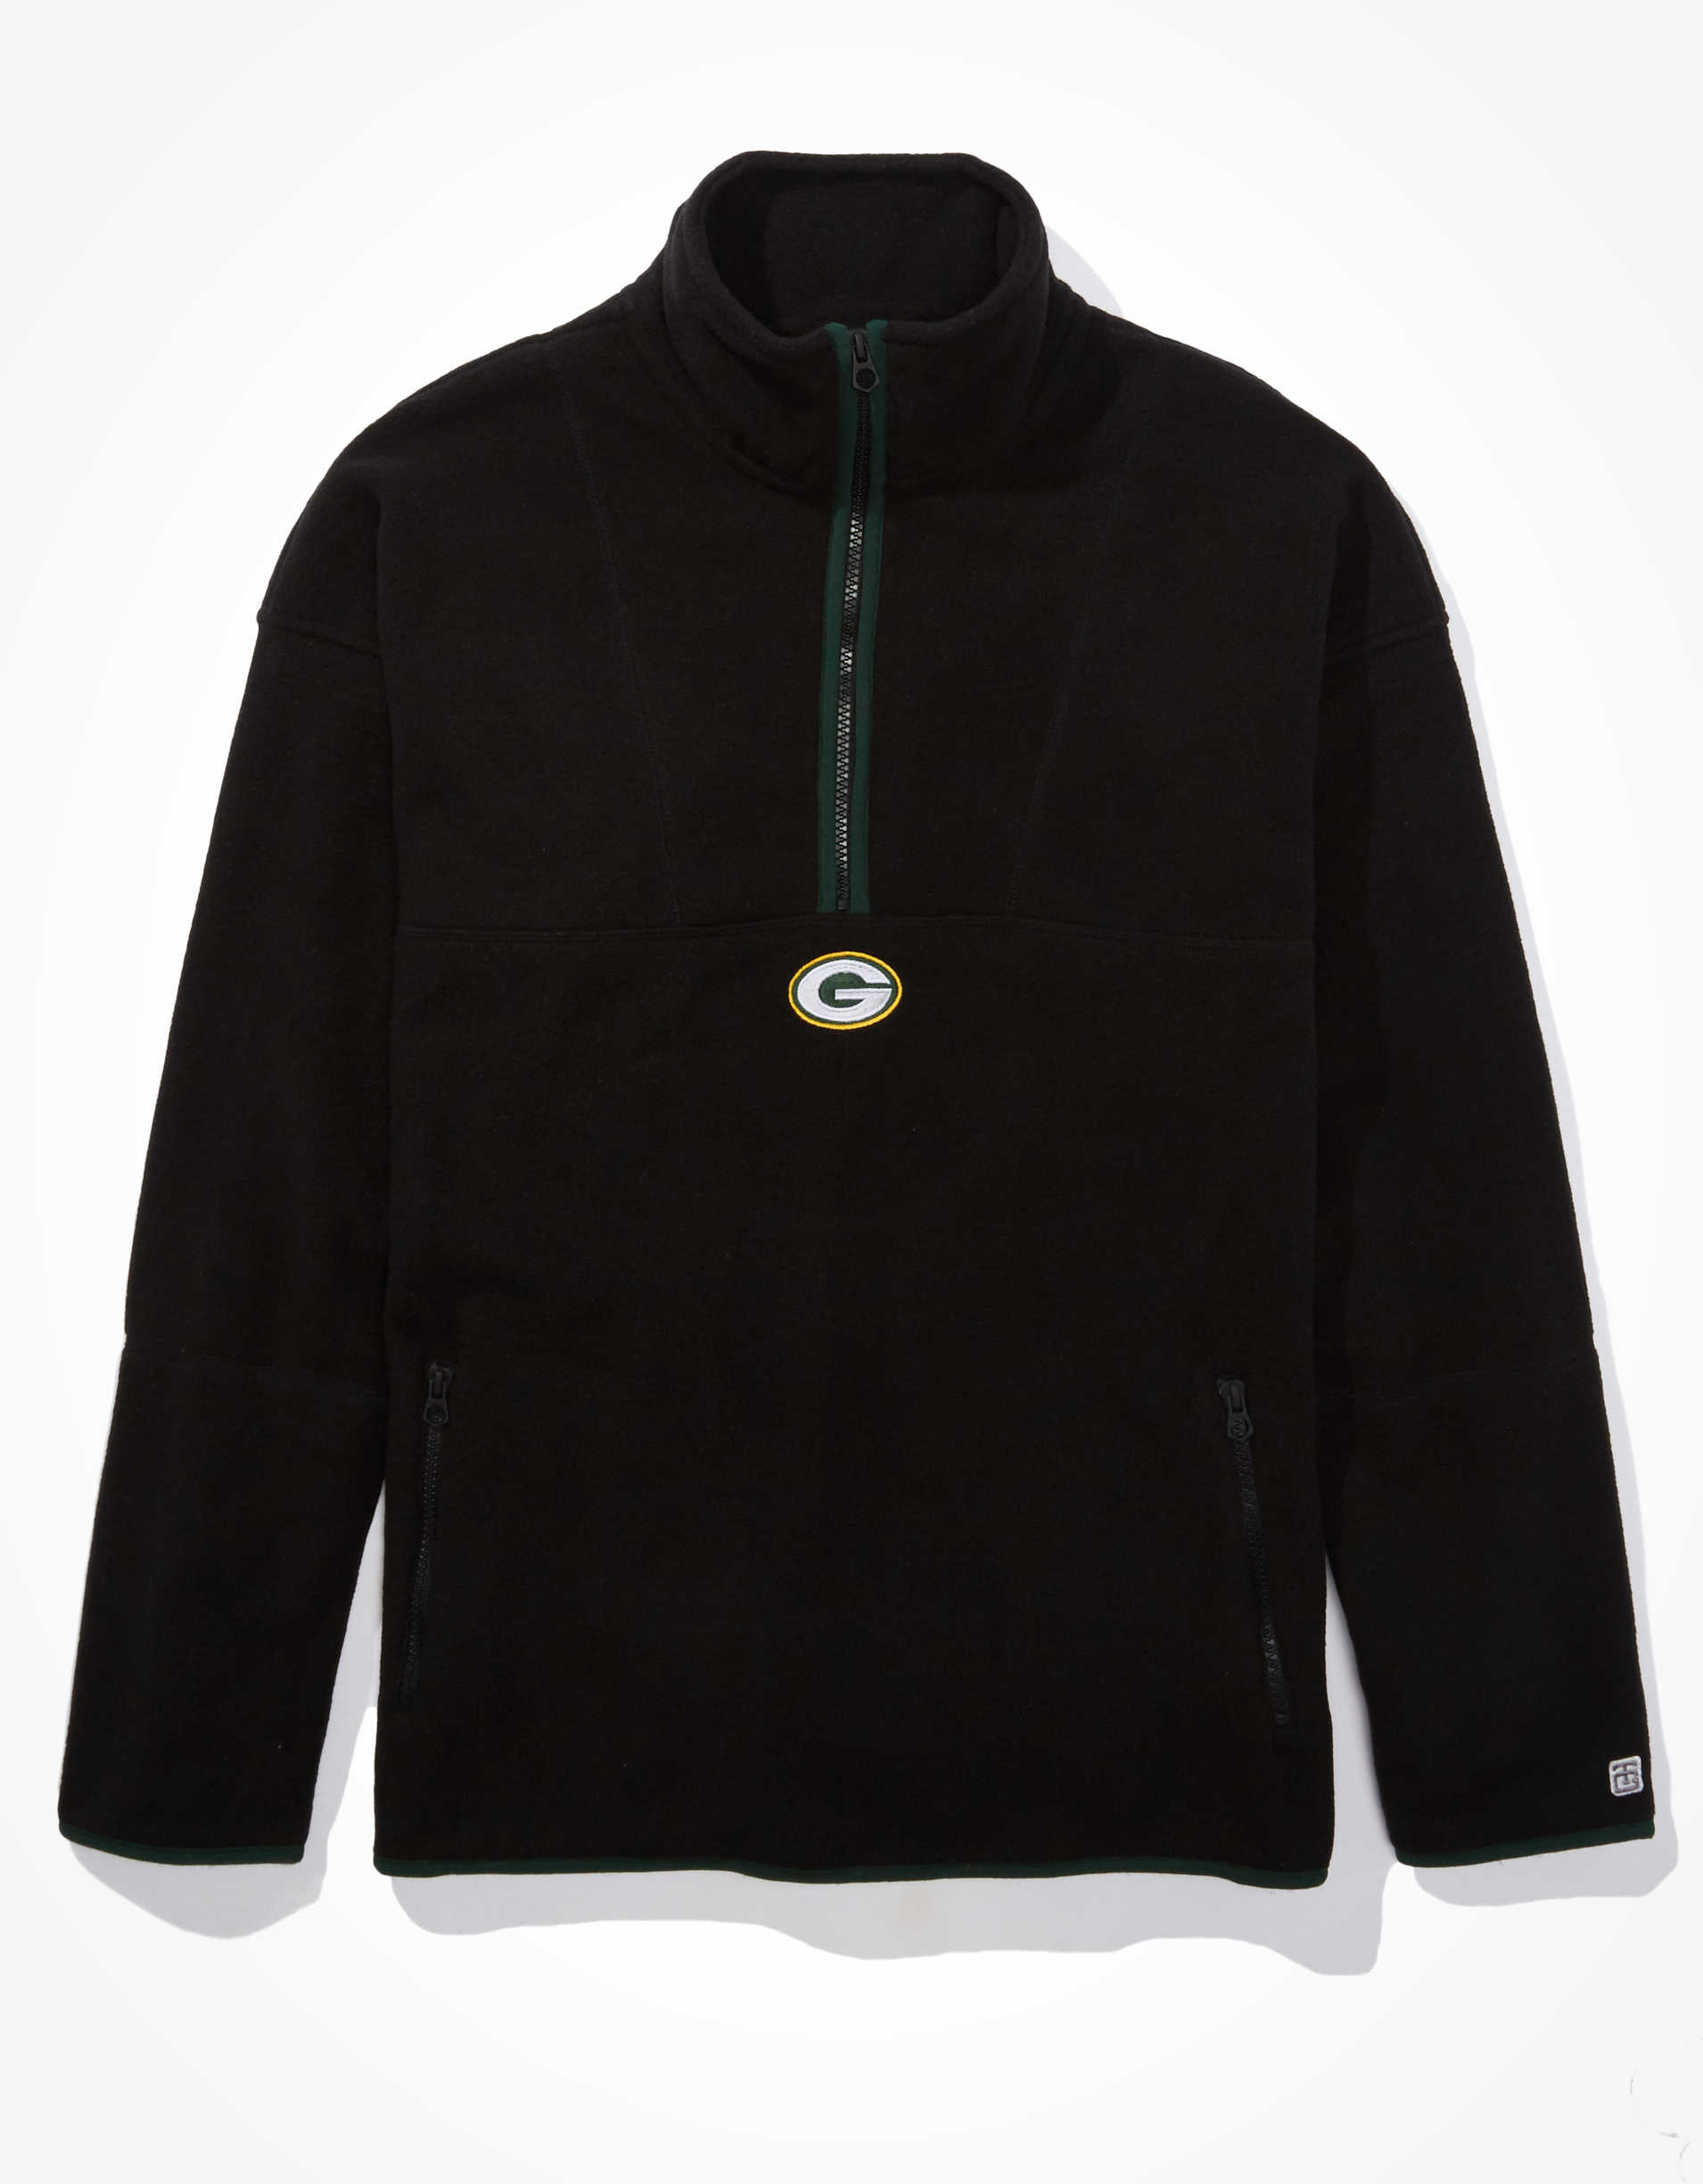 Tailgate Men's Green Bay Packers Microfleece Sweatshirt